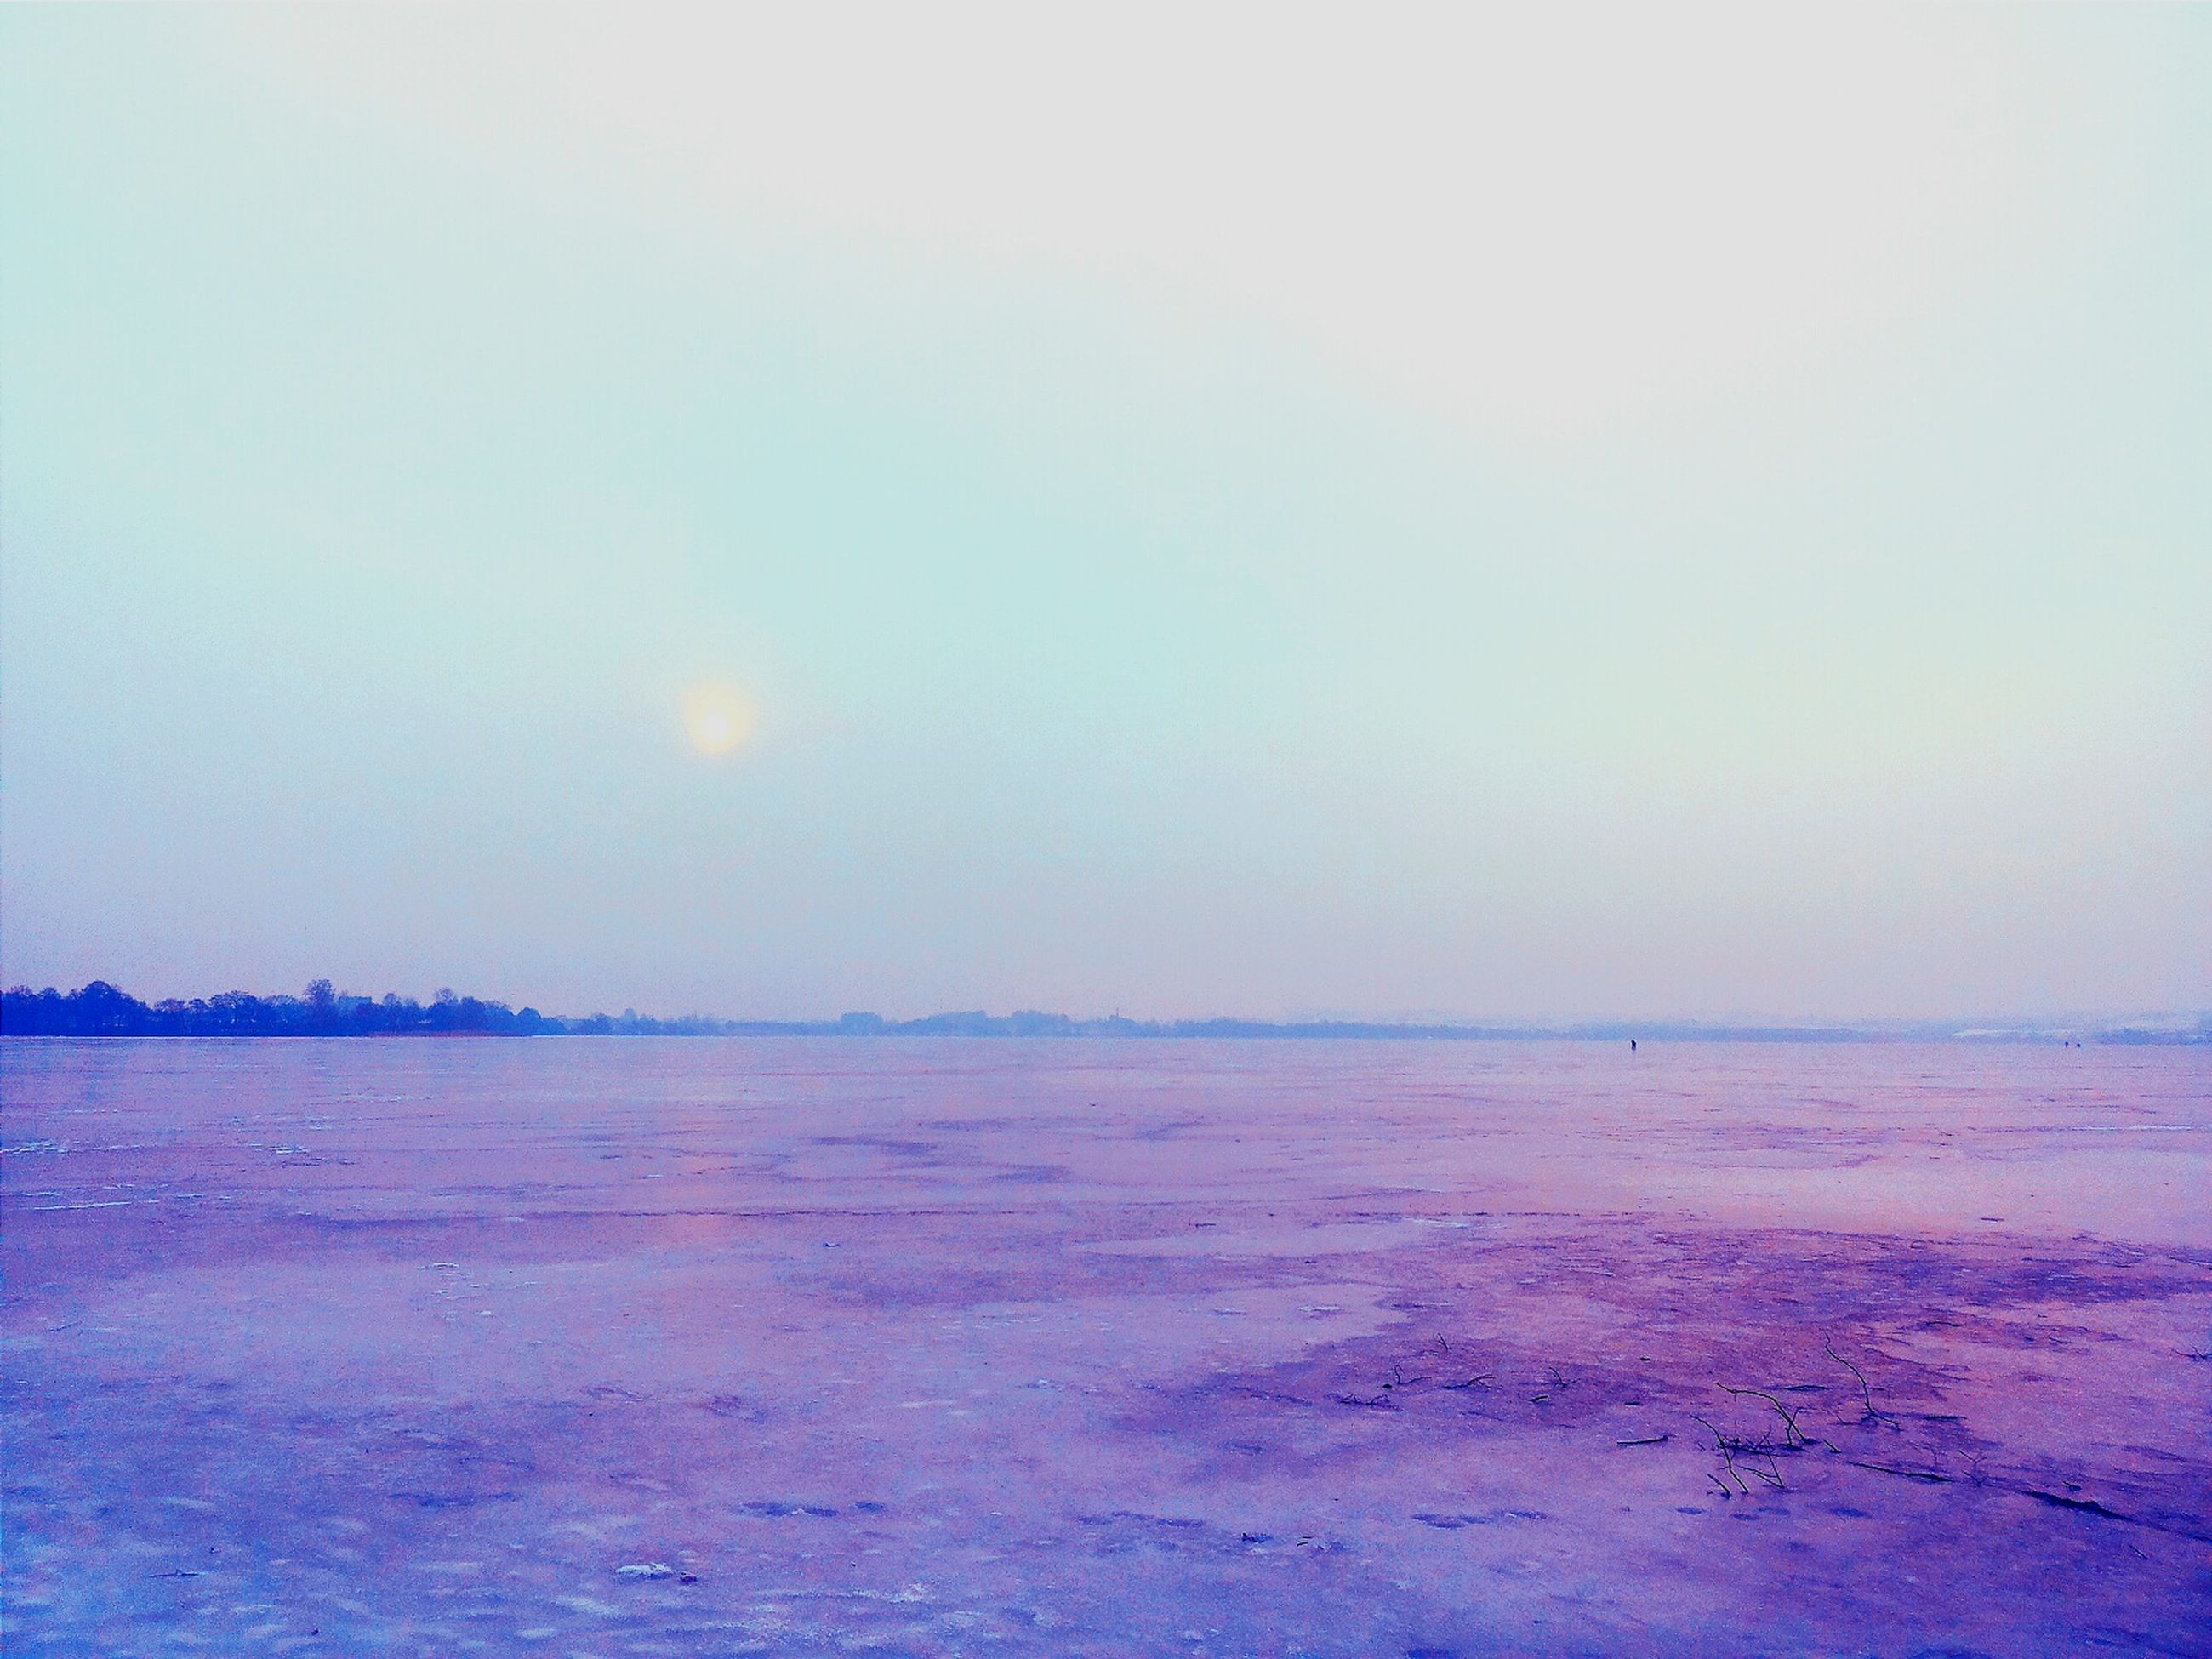 tranquil scene, tranquility, scenics, beauty in nature, nature, copy space, winter, sunset, cold temperature, snow, landscape, idyllic, clear sky, sky, weather, non-urban scene, remote, water, outdoors, no people